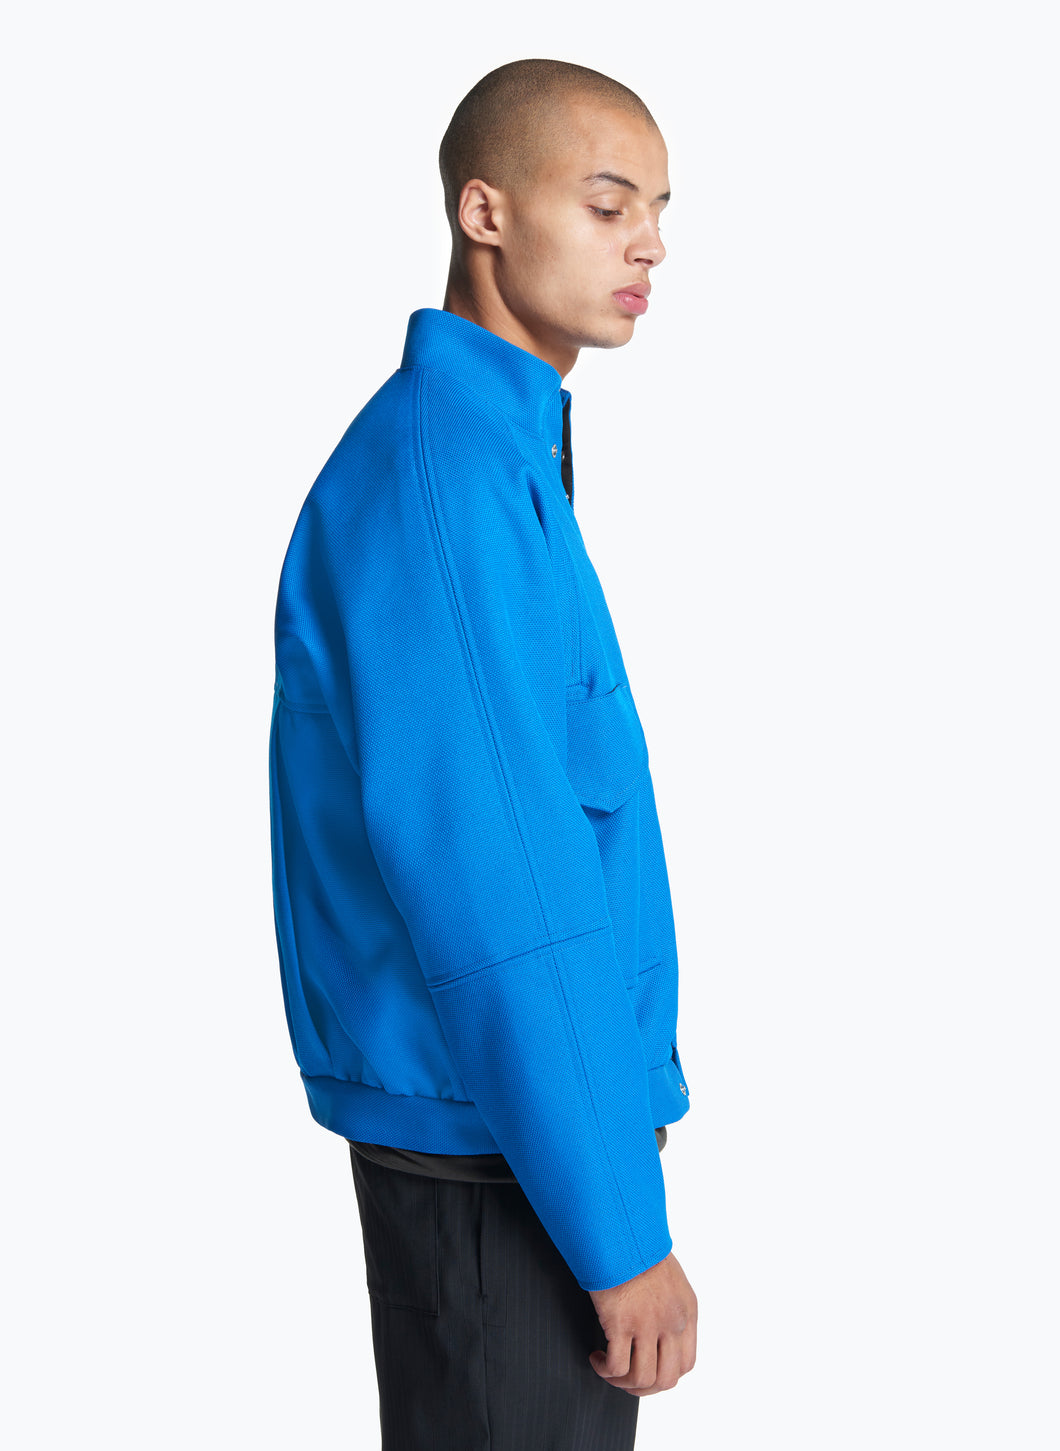 Bomber Jacket with Large Front Pockets in Royal Blue Technical Fabric